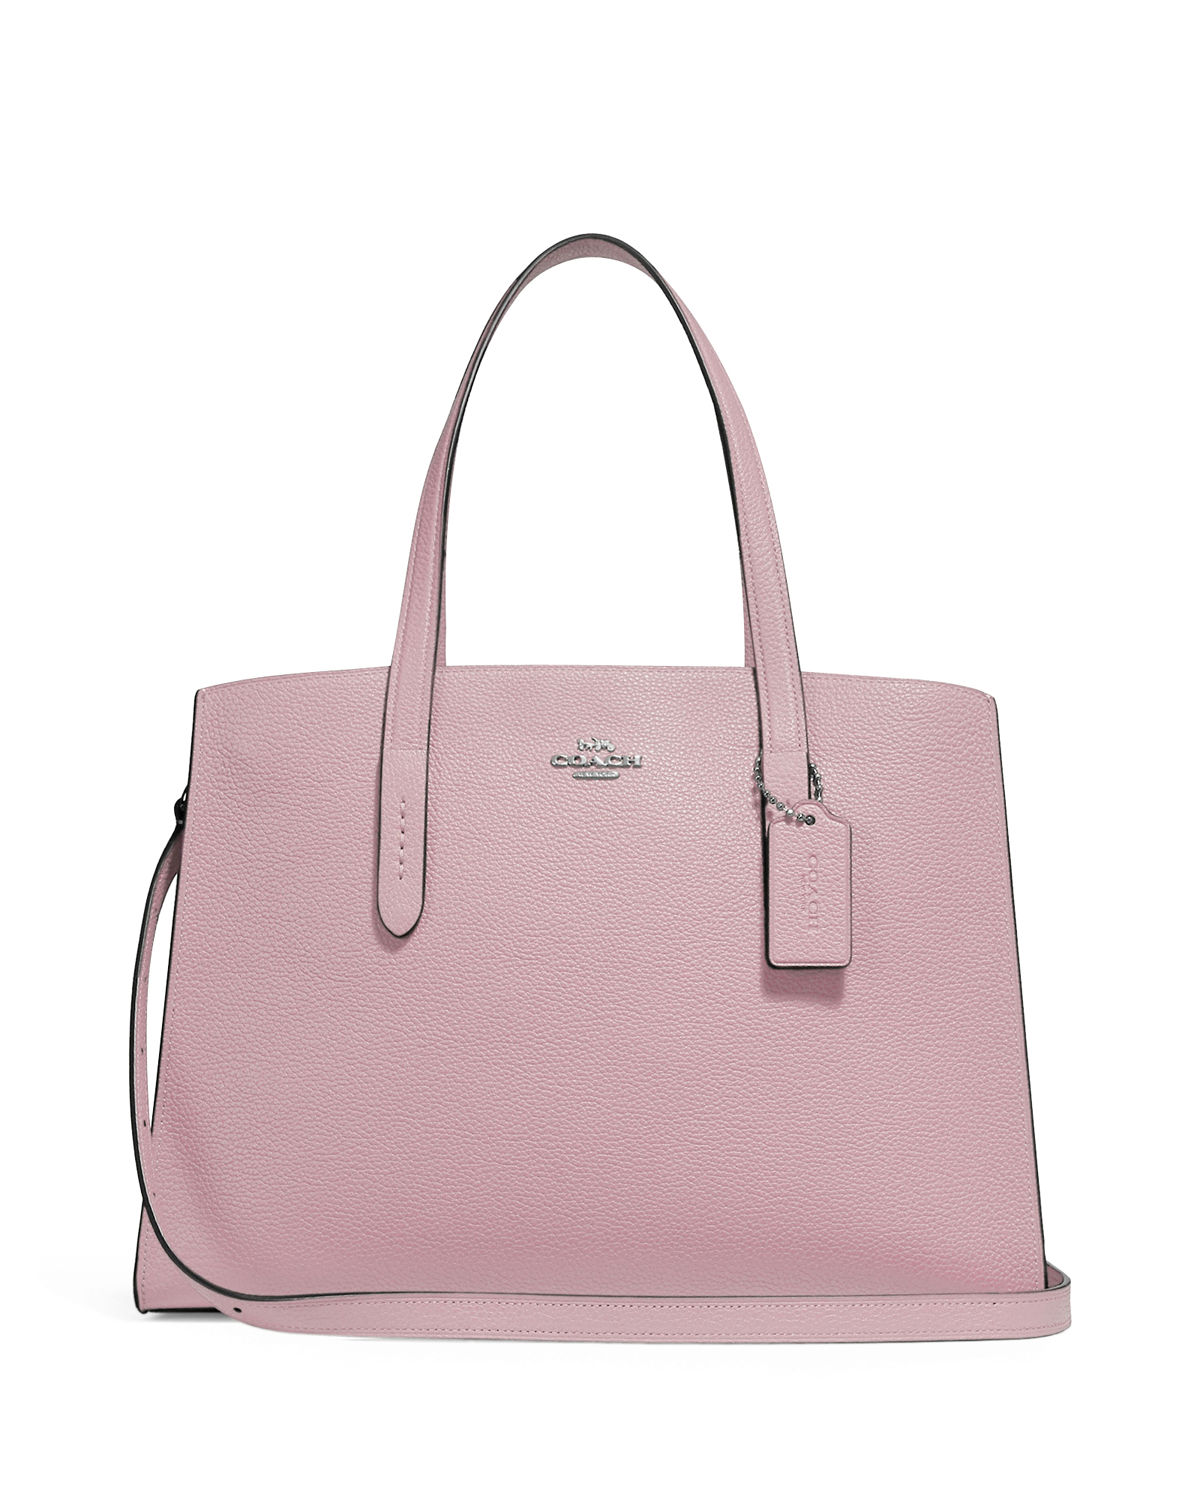 ac70eef7be6a Coach 1941 Charlie Polished Pebbled Leather Carryall Tote Bag ...